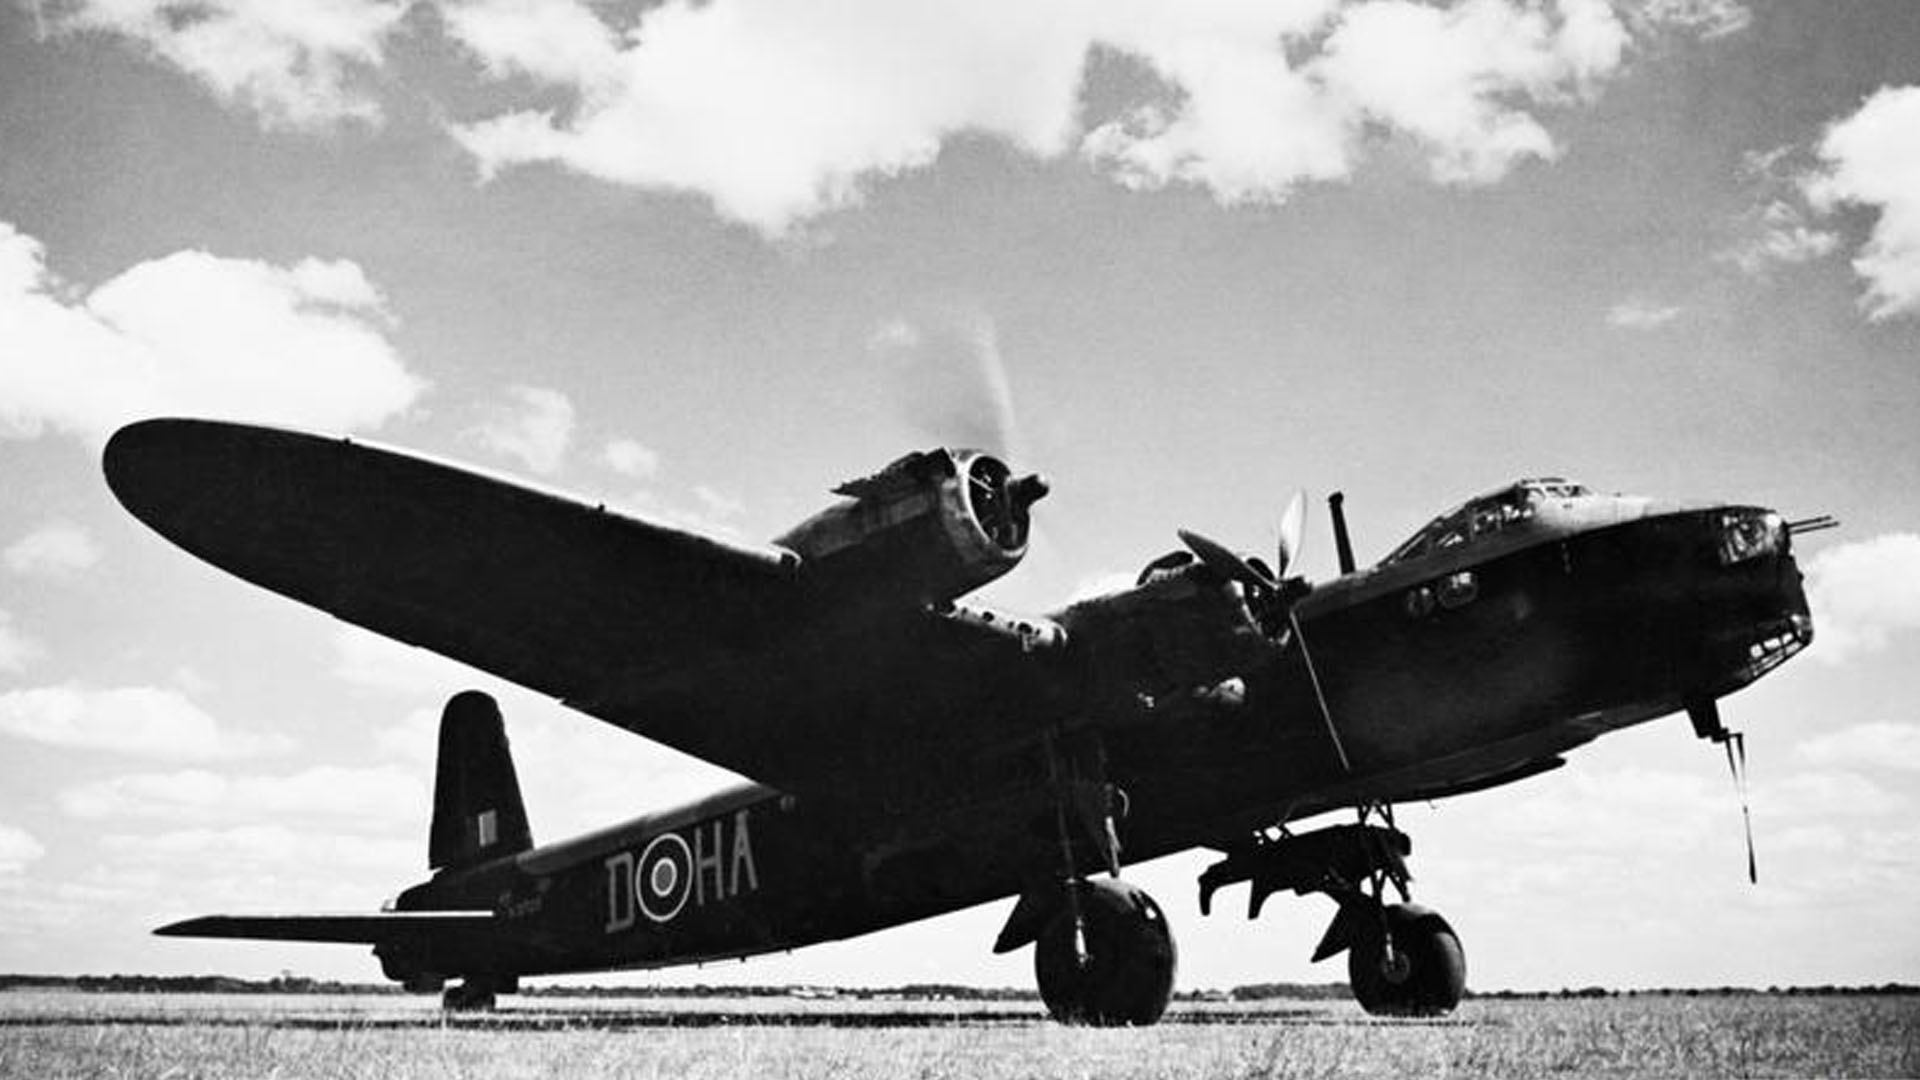 Ernest Watson died on Short Stirling N3725 HA-D